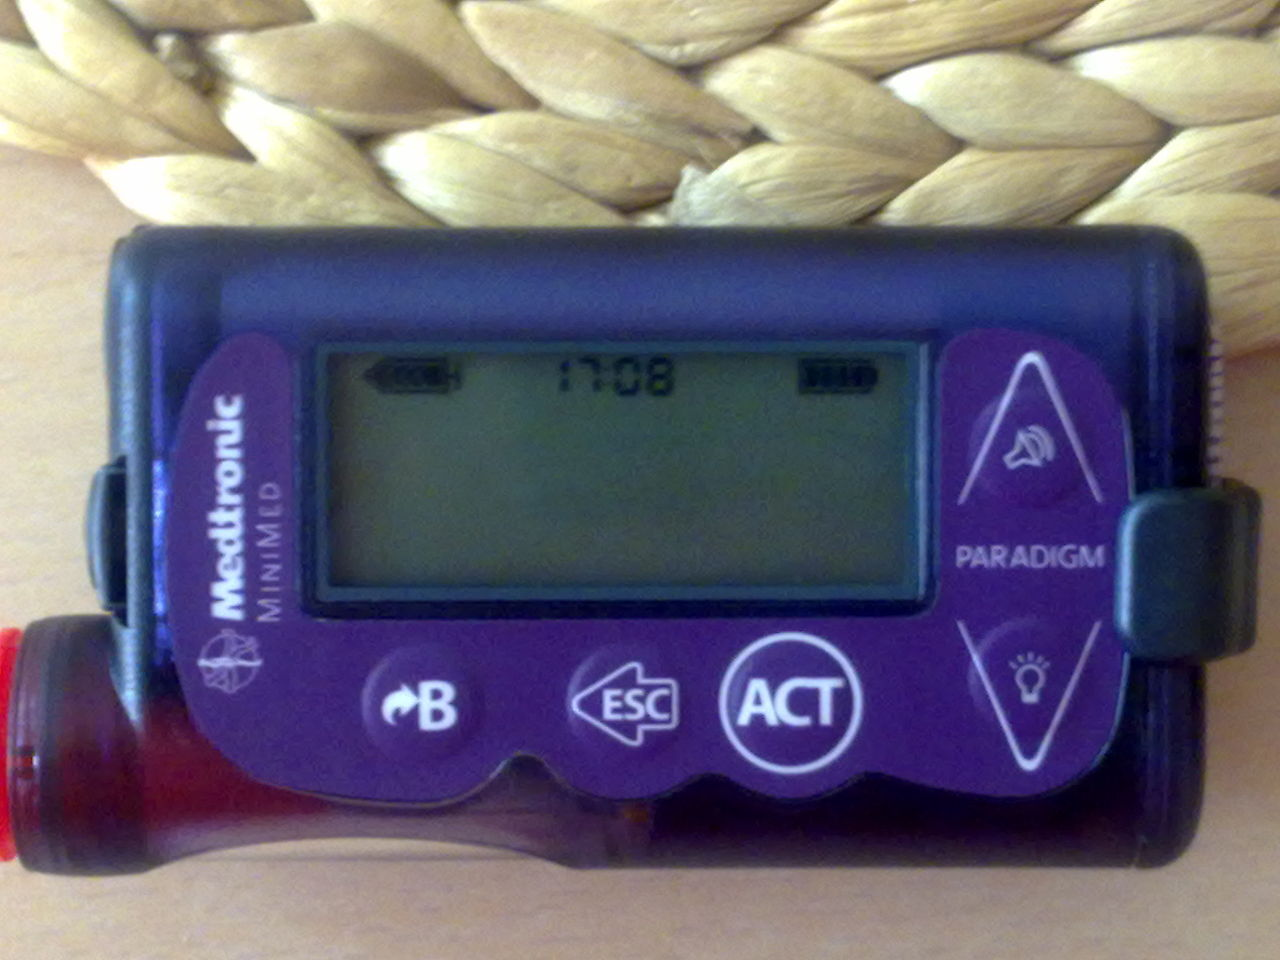 Medtronic Artificial Pancreas >> File:Insulin pump Medtronic Paradigm 754.jpg - Wikimedia Commons